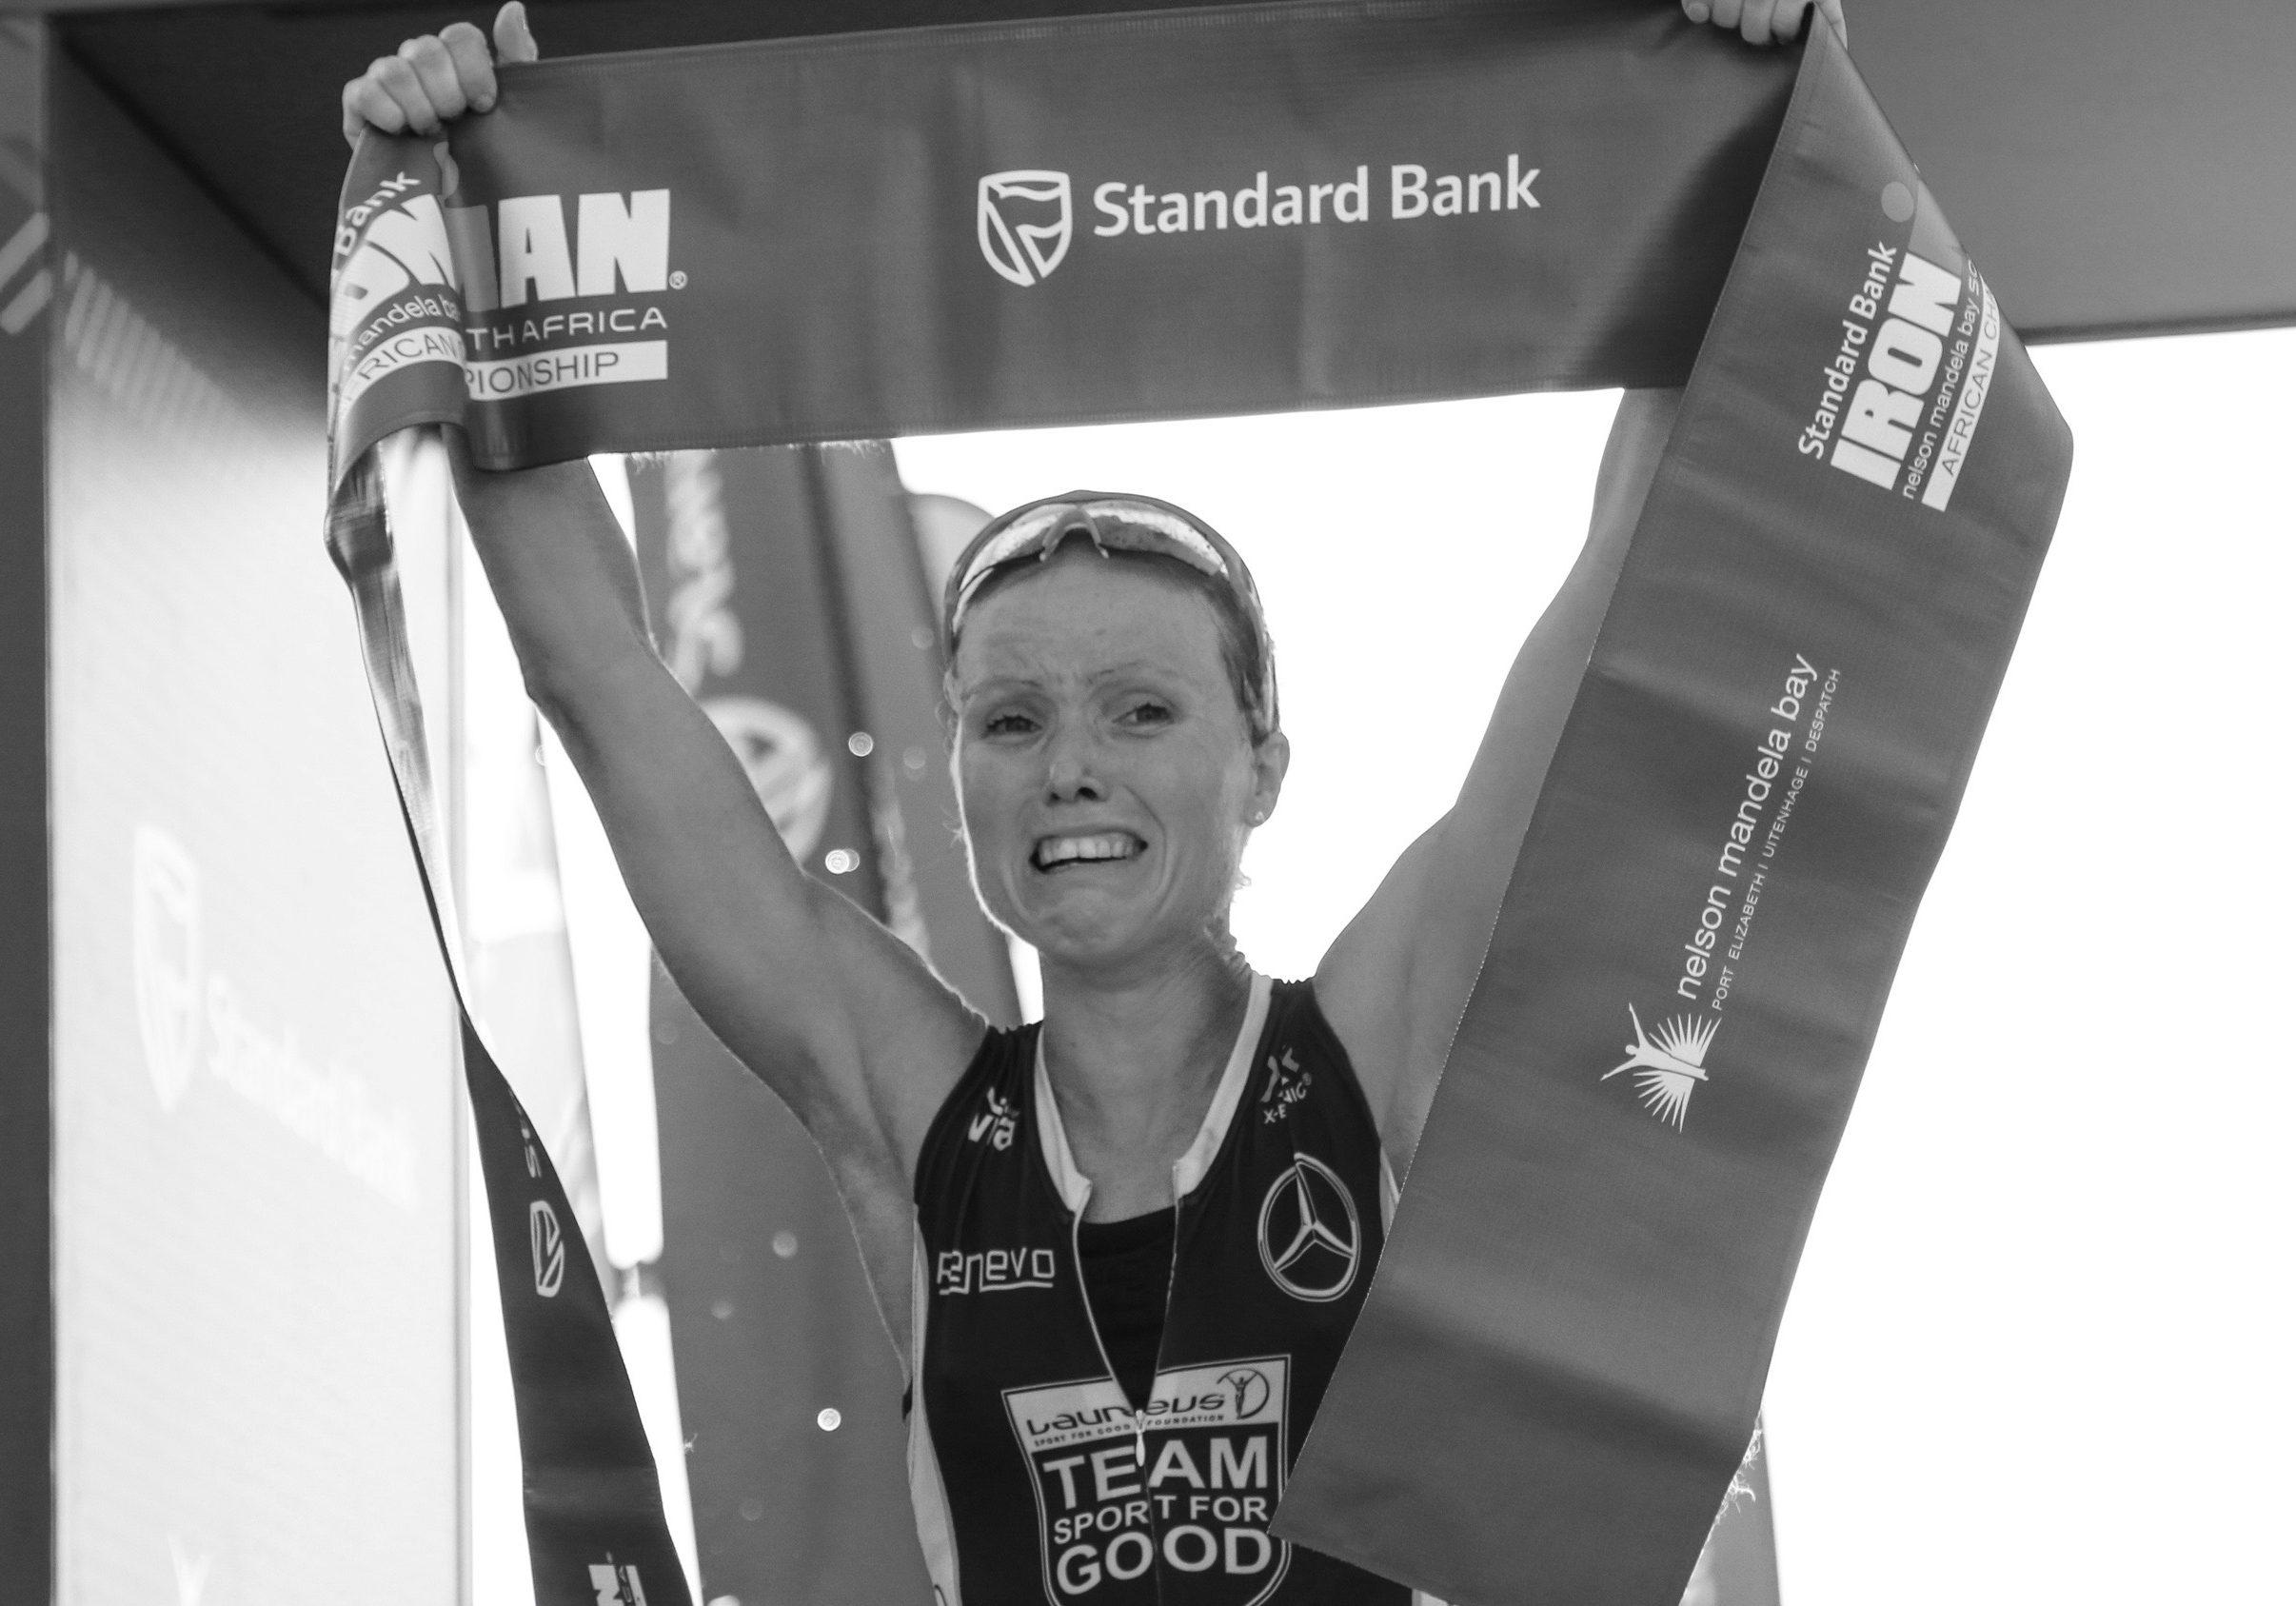 Kaisa Lehtonen : Finish: Action during the Standard Bank IRONMAN African Championship at Nelson Mandela Bay, Port Elizabeth on April 10th, 2016 in Port Elizabeth, South Africa